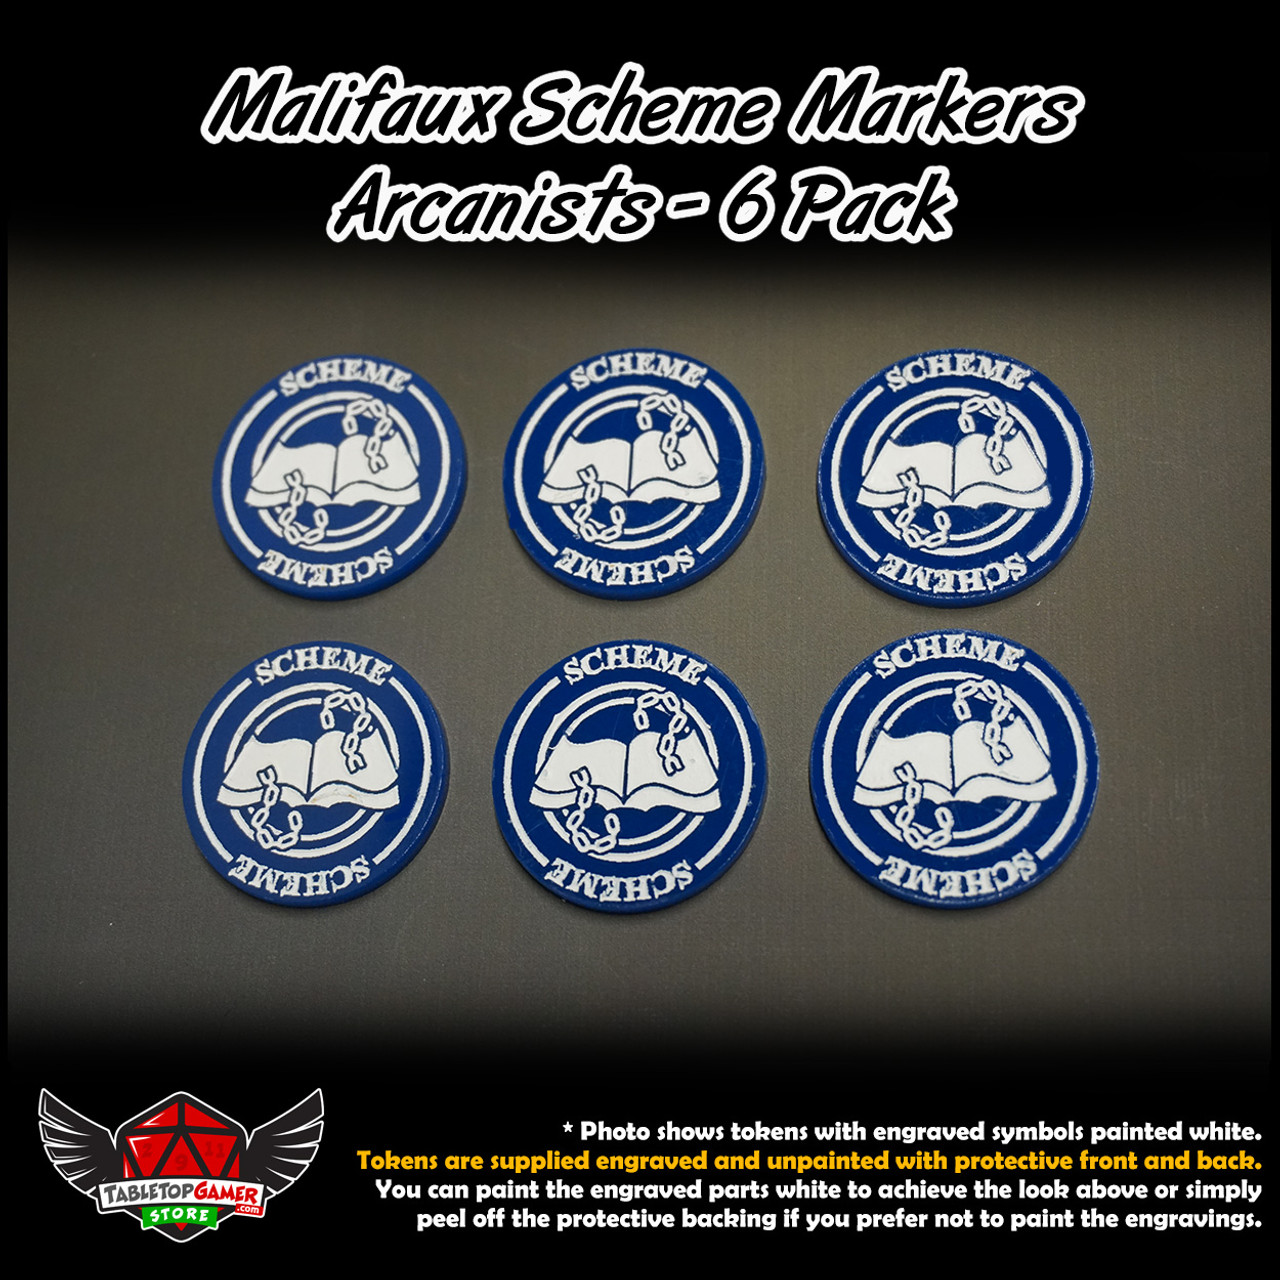 Malifaux M3E Scheme Markers - Arcanists - 6 Pack